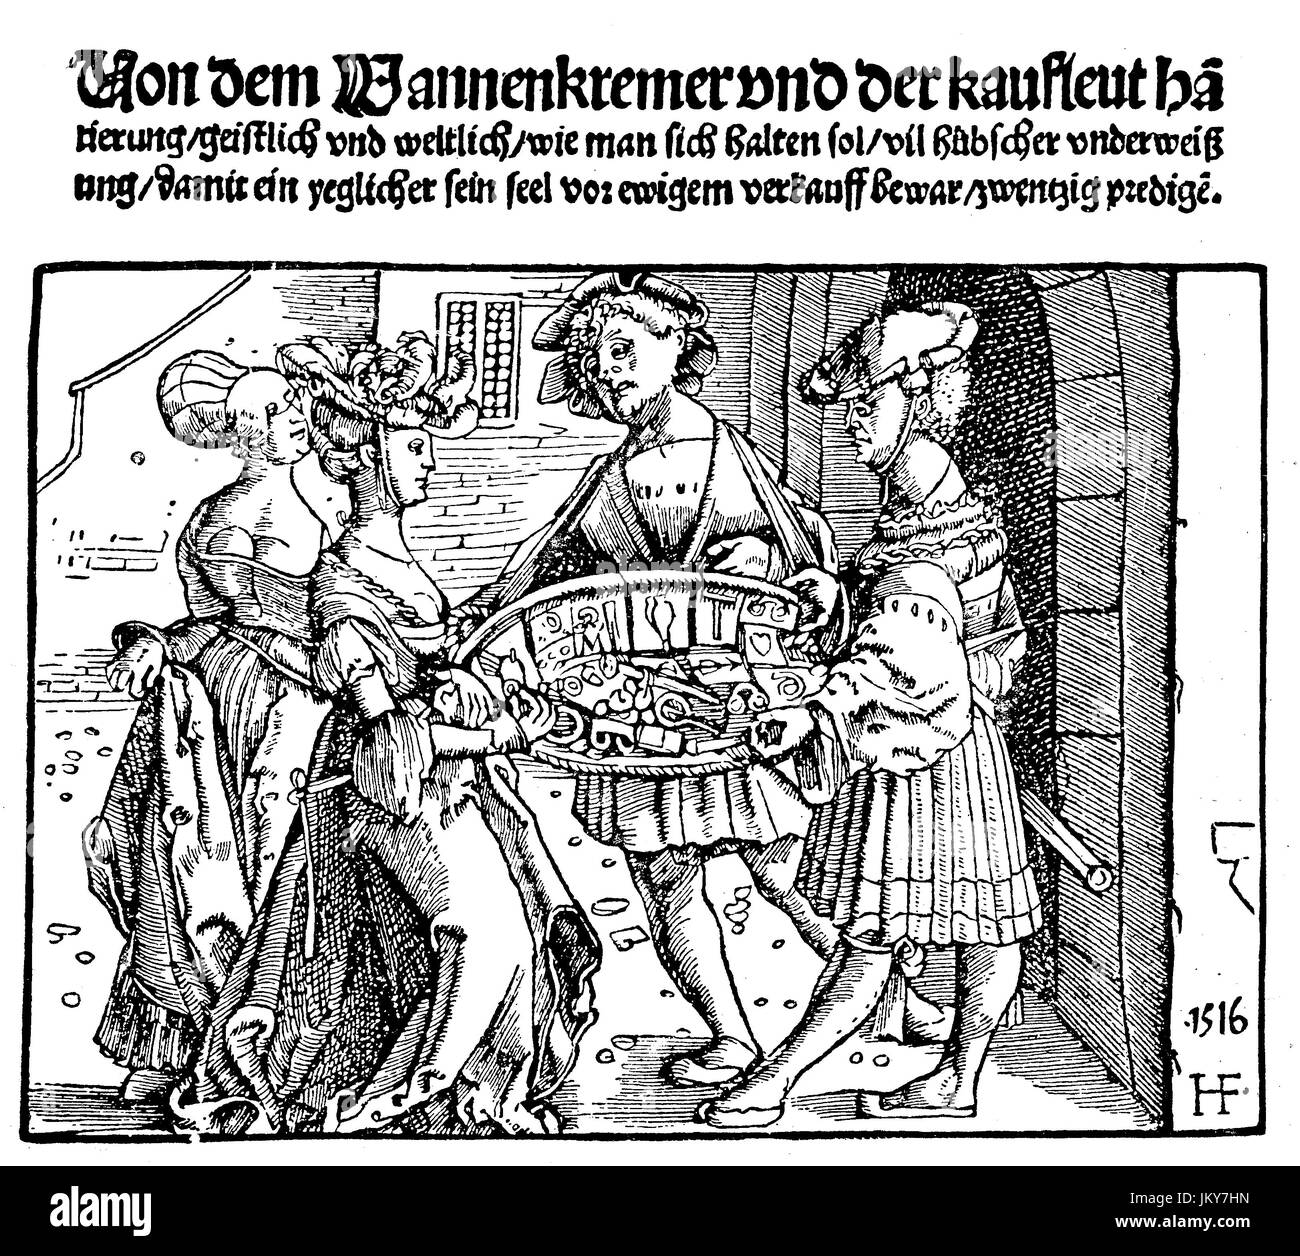 Digital improved:, Costumes, women examine the goods of the peddlers, merchants, woodcut of 1516, publication from - Stock Image